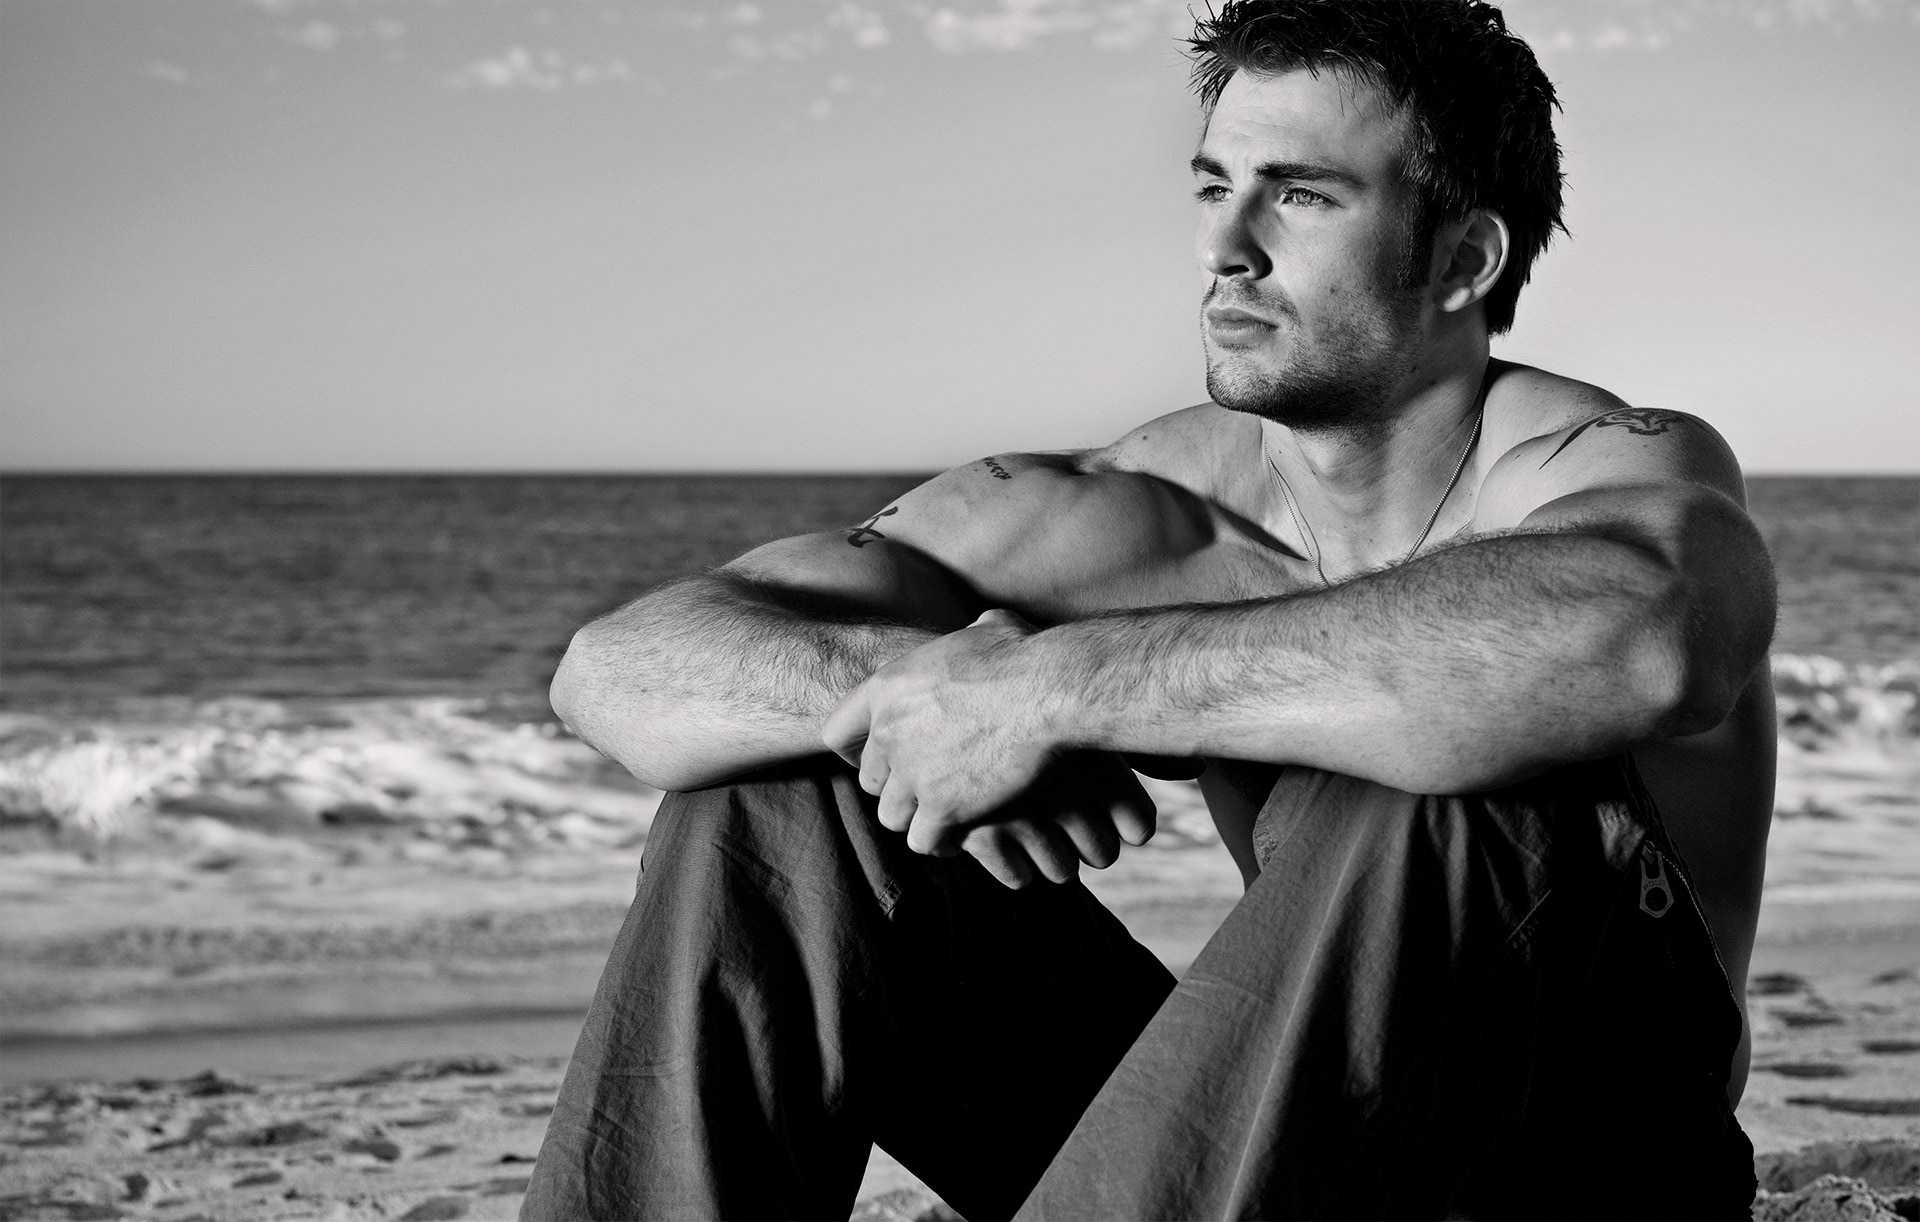 20060413_SLPF_MENS_HEALTH_CHRIS_EVANS_S14_0016_BW